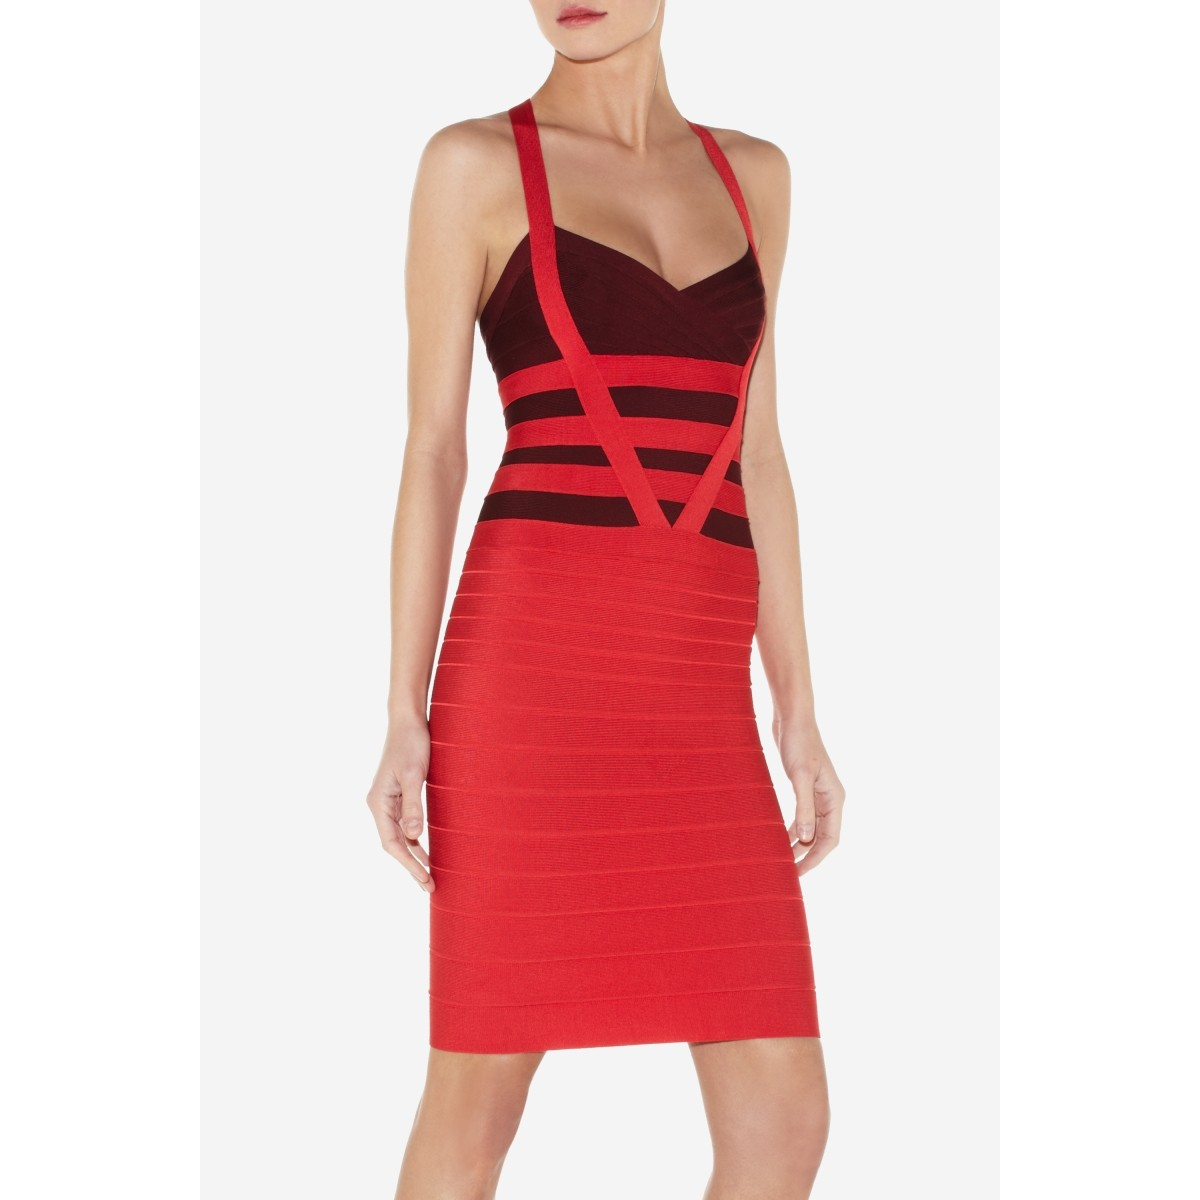 Herve Leger Balinda Colorblocked Dress